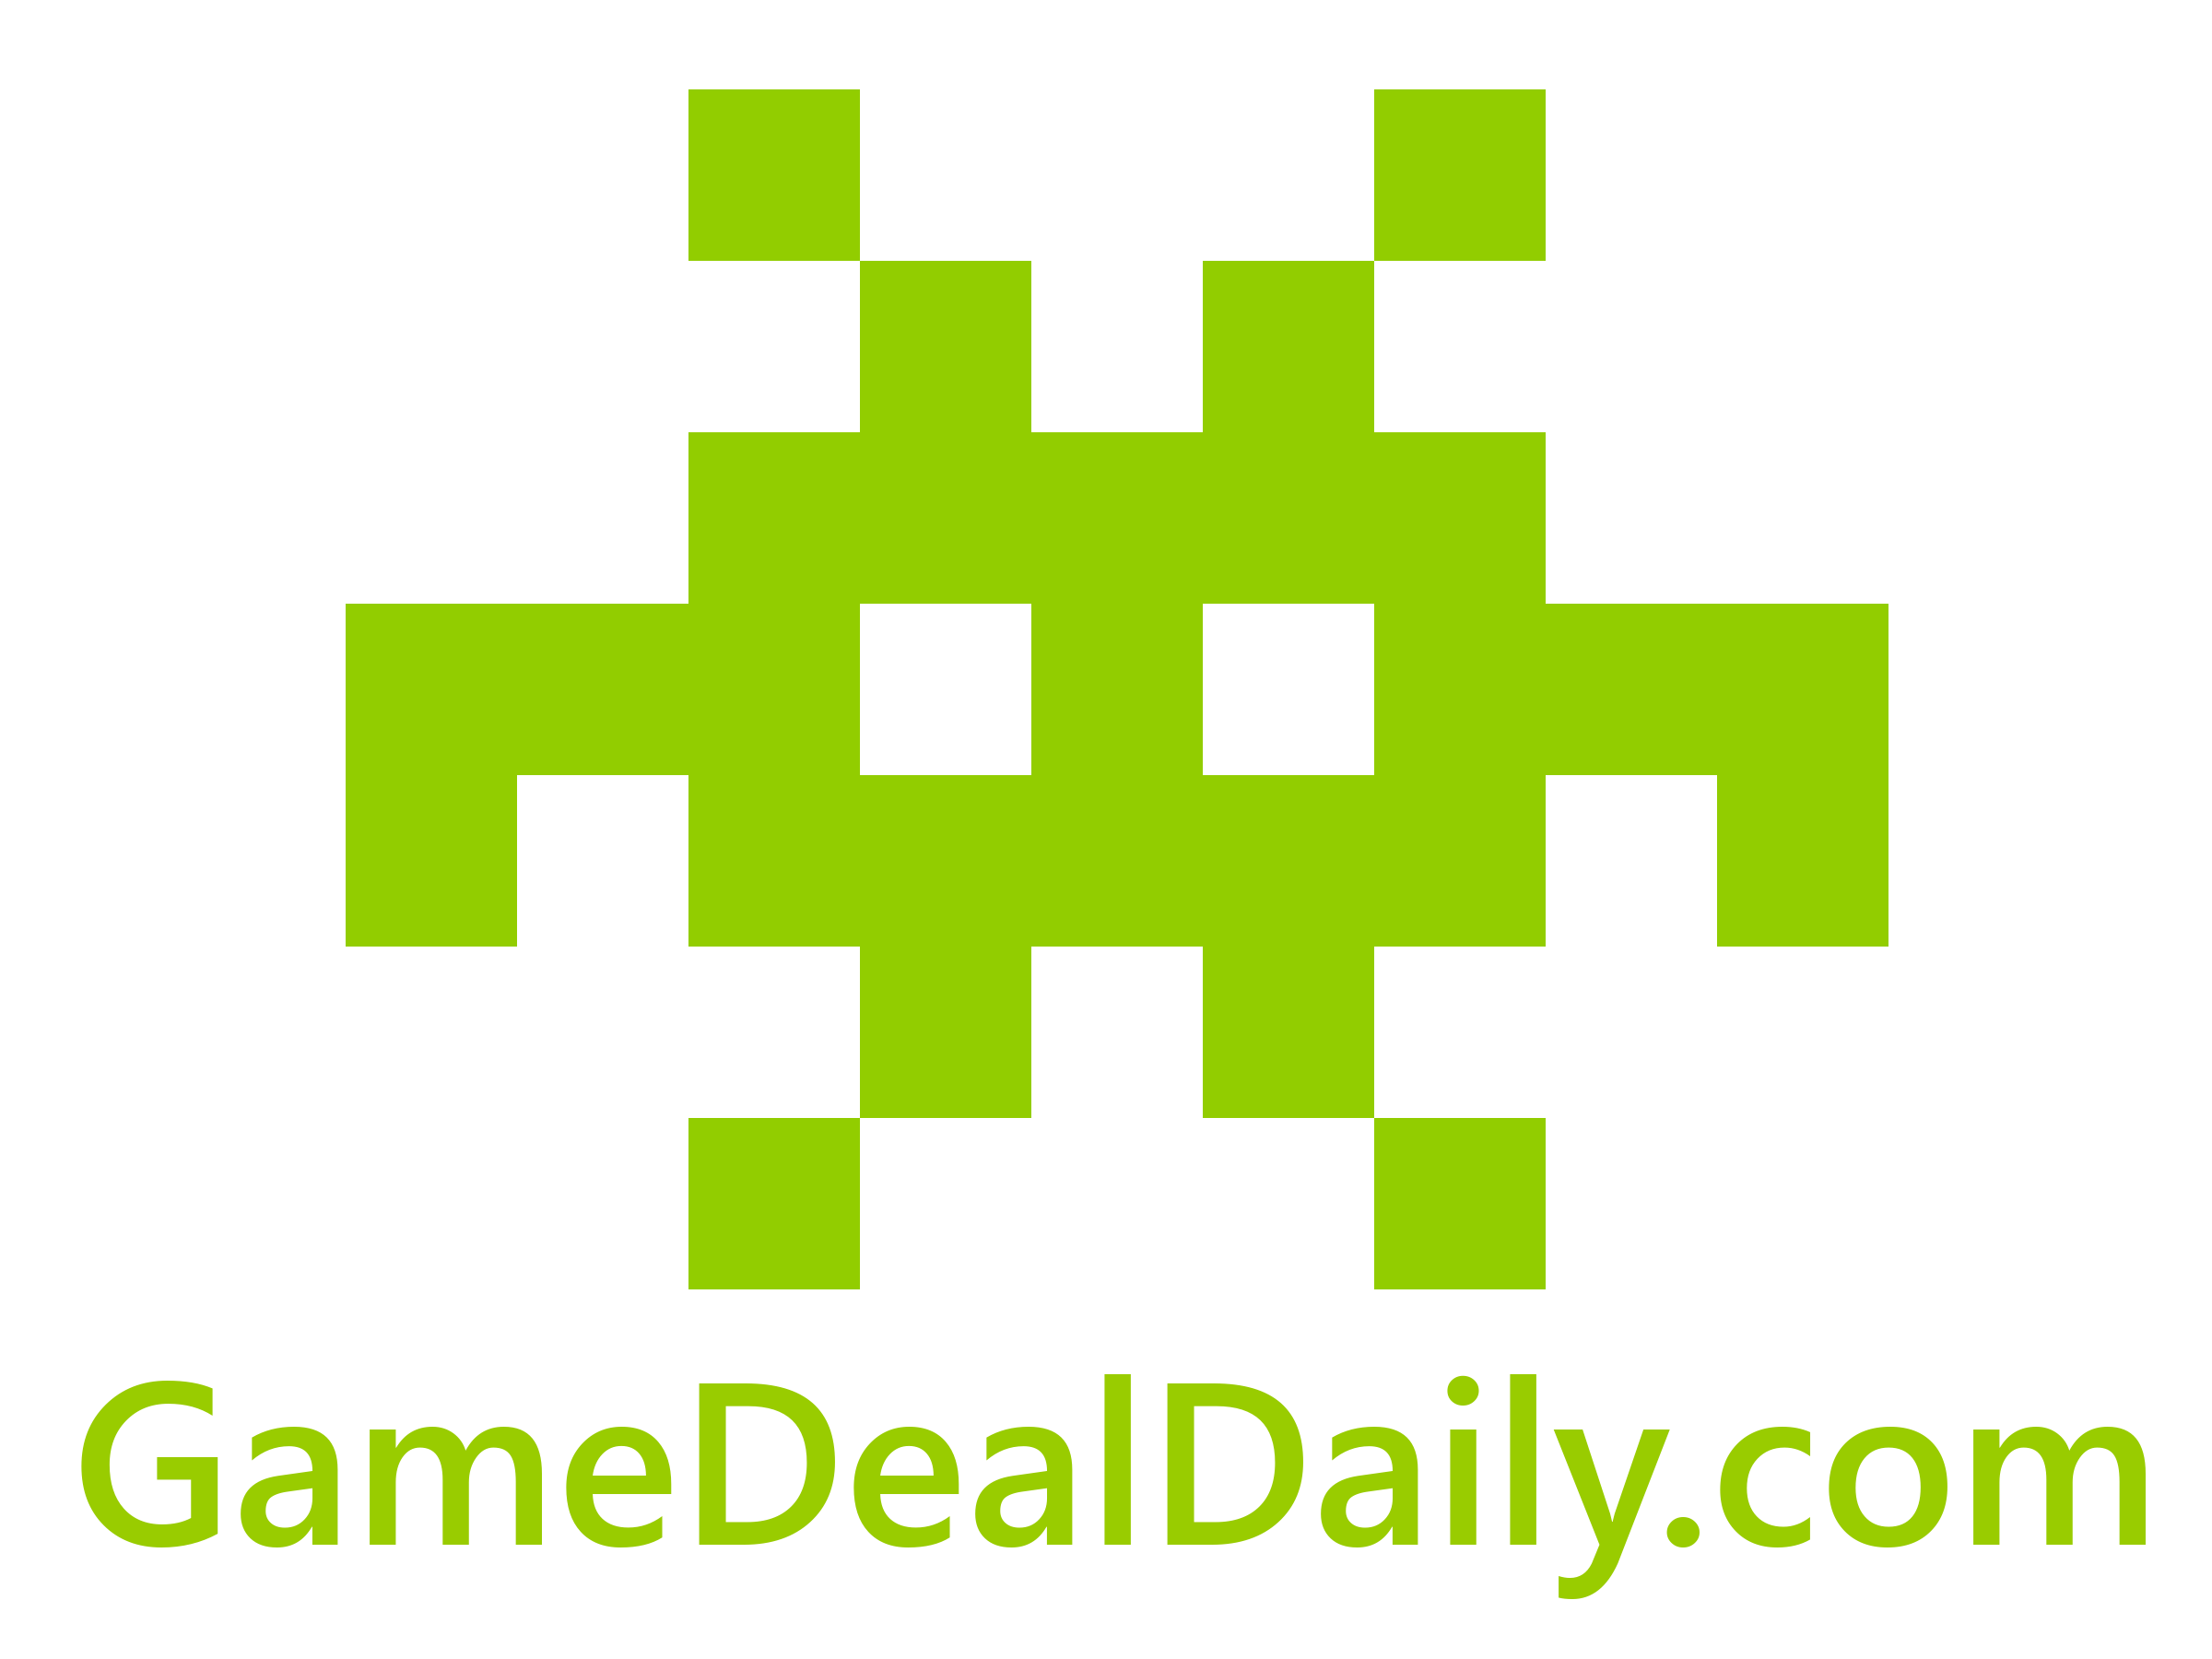 Game Deal Daily Promo Codes: Up to 0% off